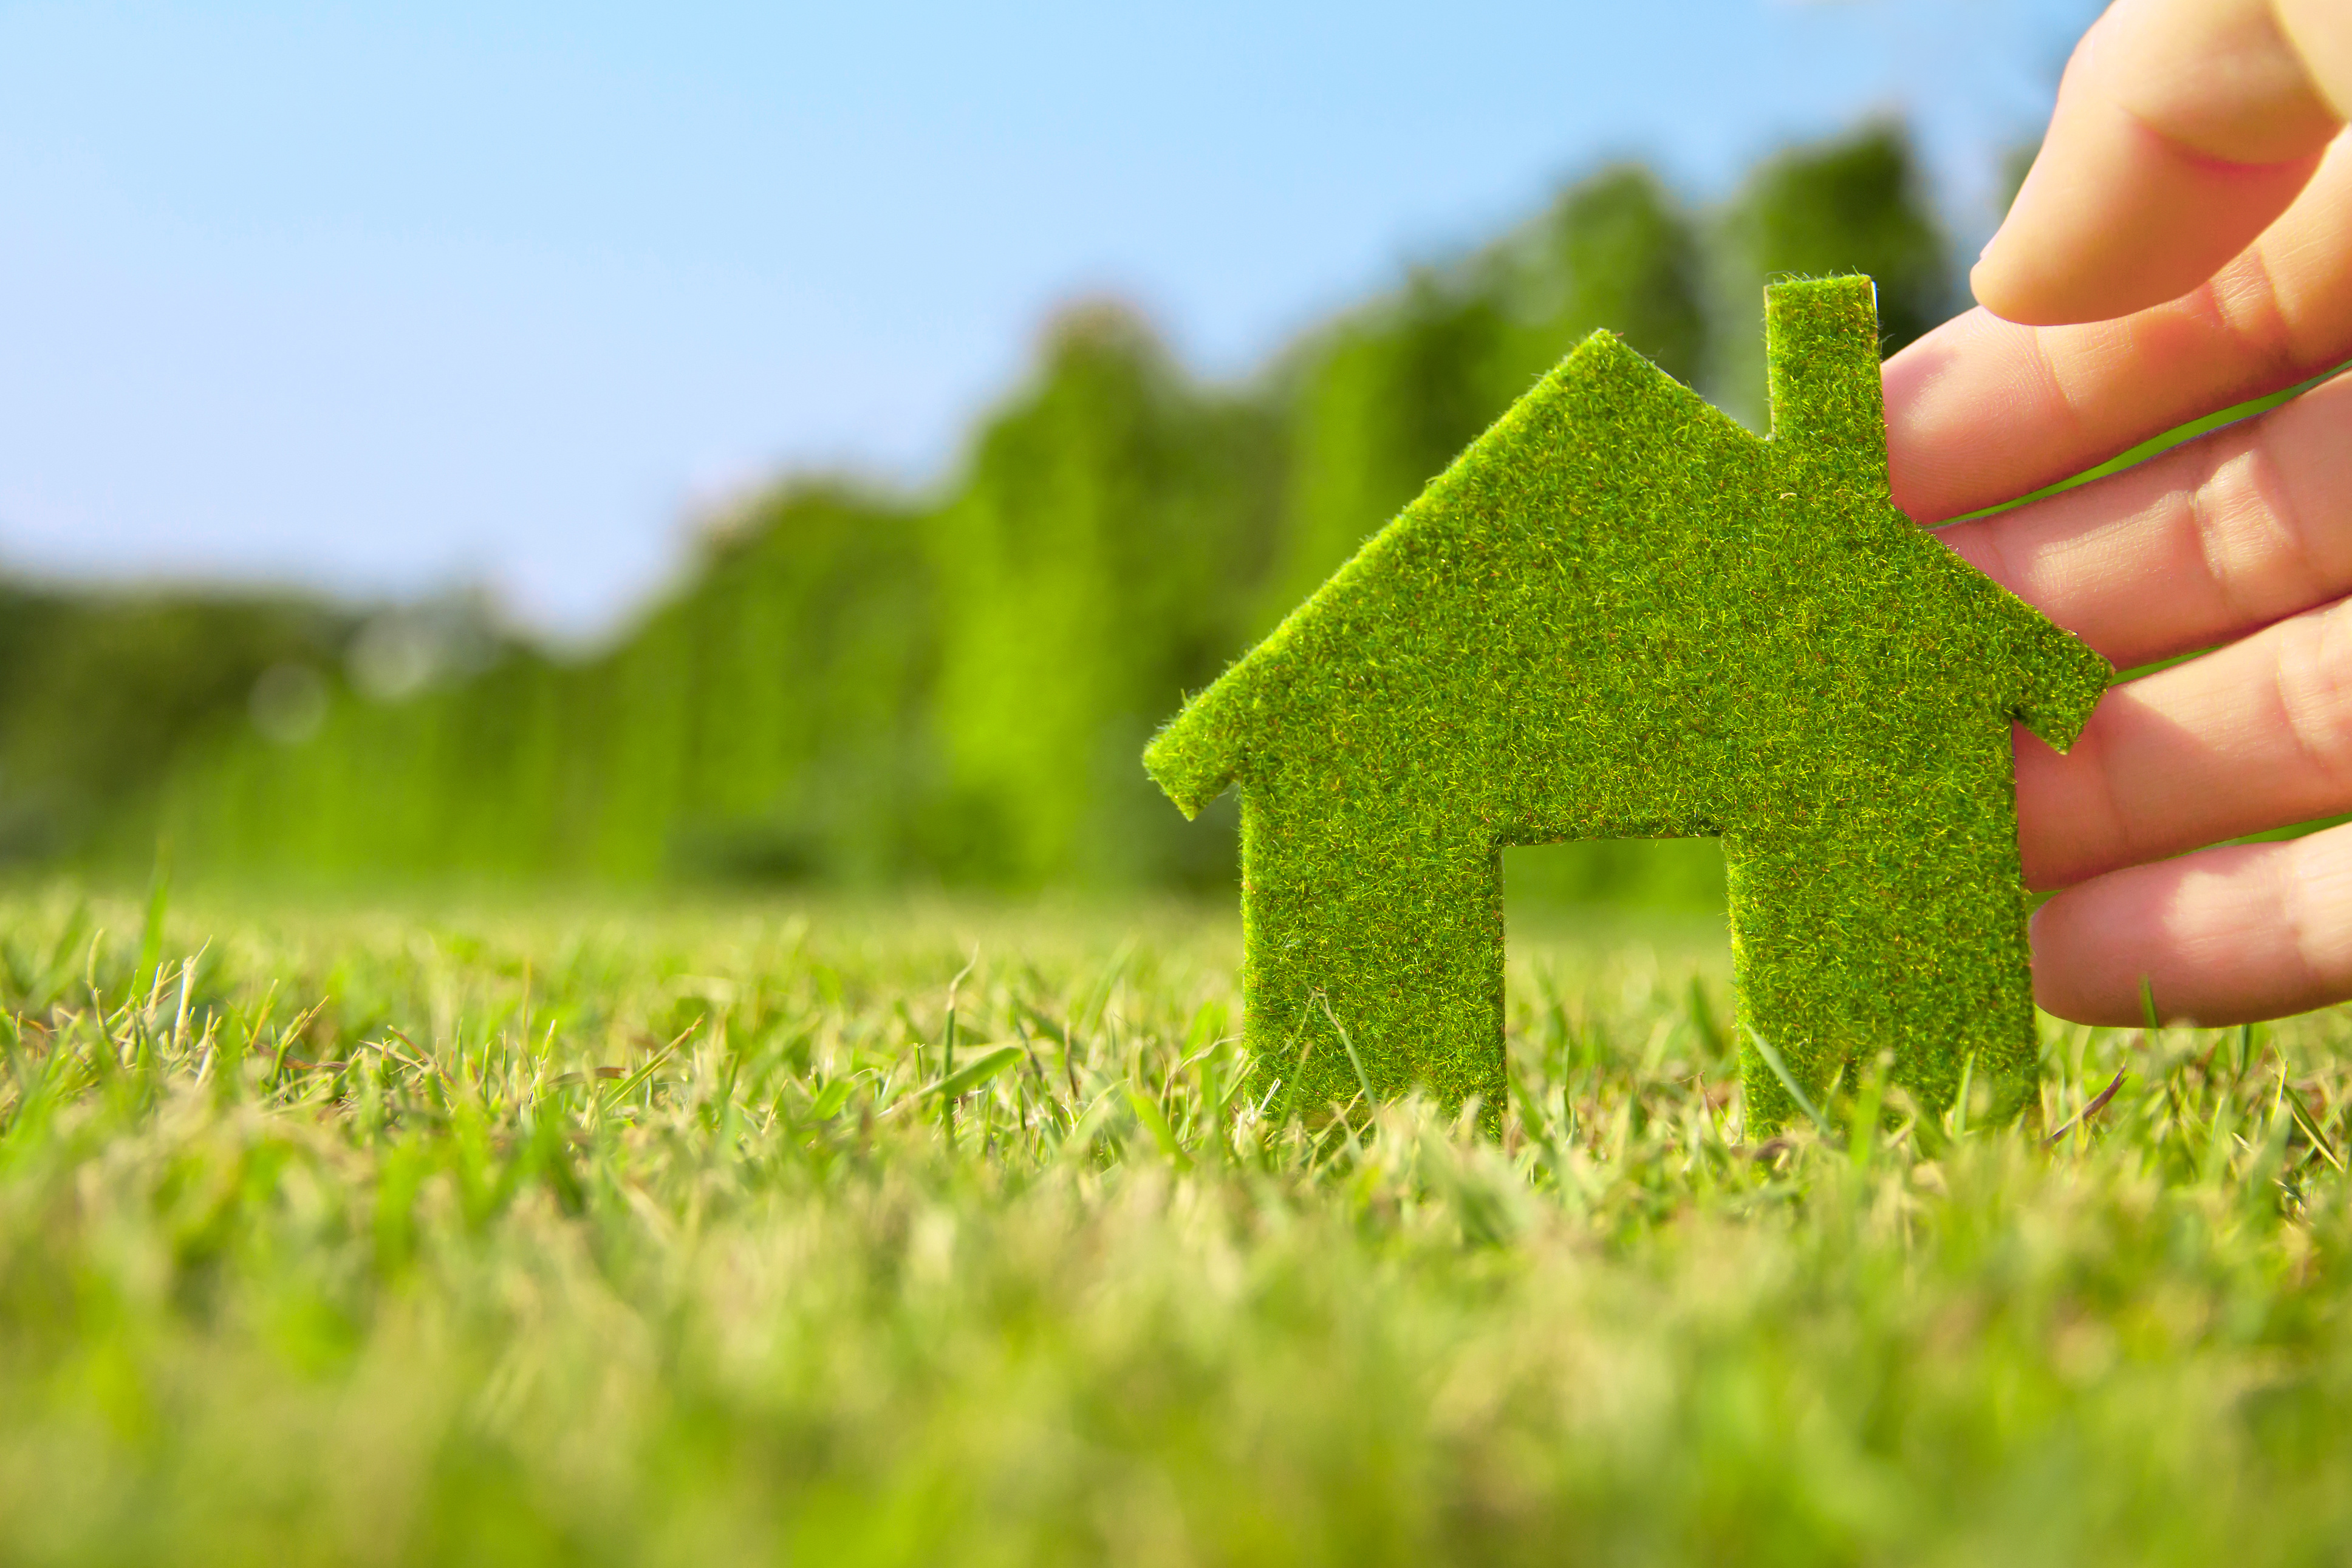 Eco-Friendly homes can help save both the environment and your retirement savings!